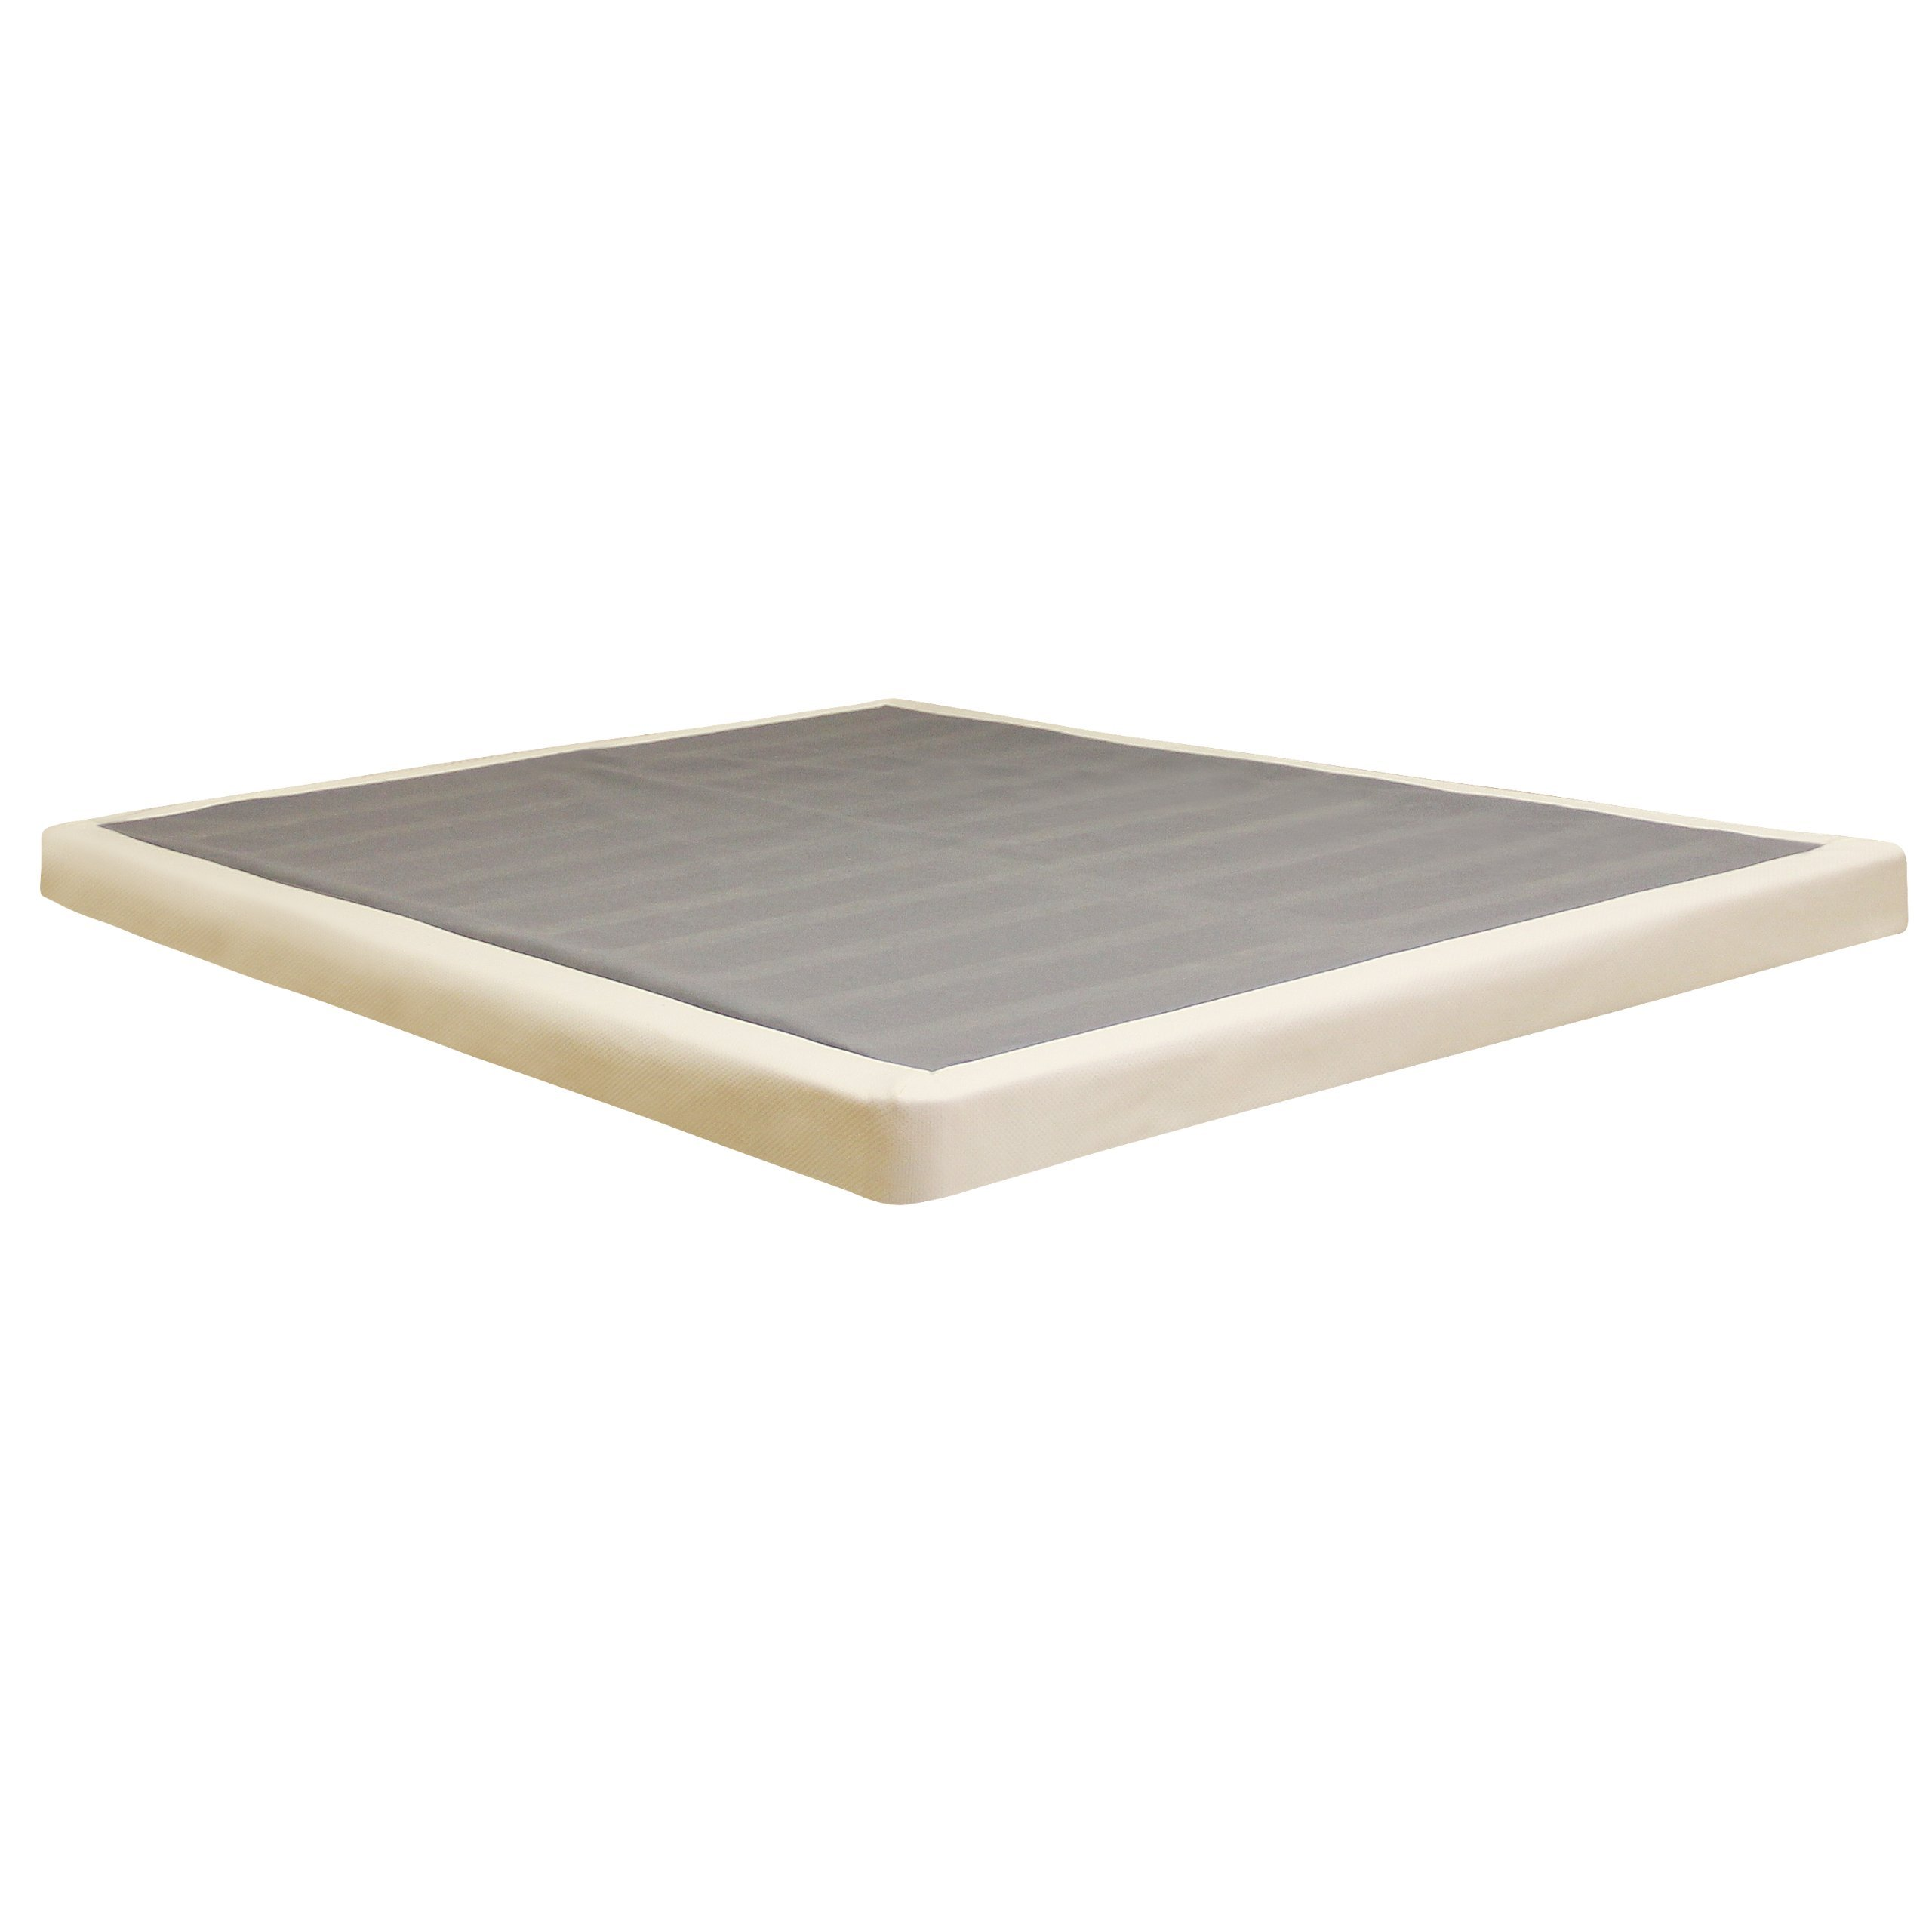 Lifetime sleep products 4'' Low Profile Box Spring great for Memory Foam Mattress, King by Lifetime sleep products